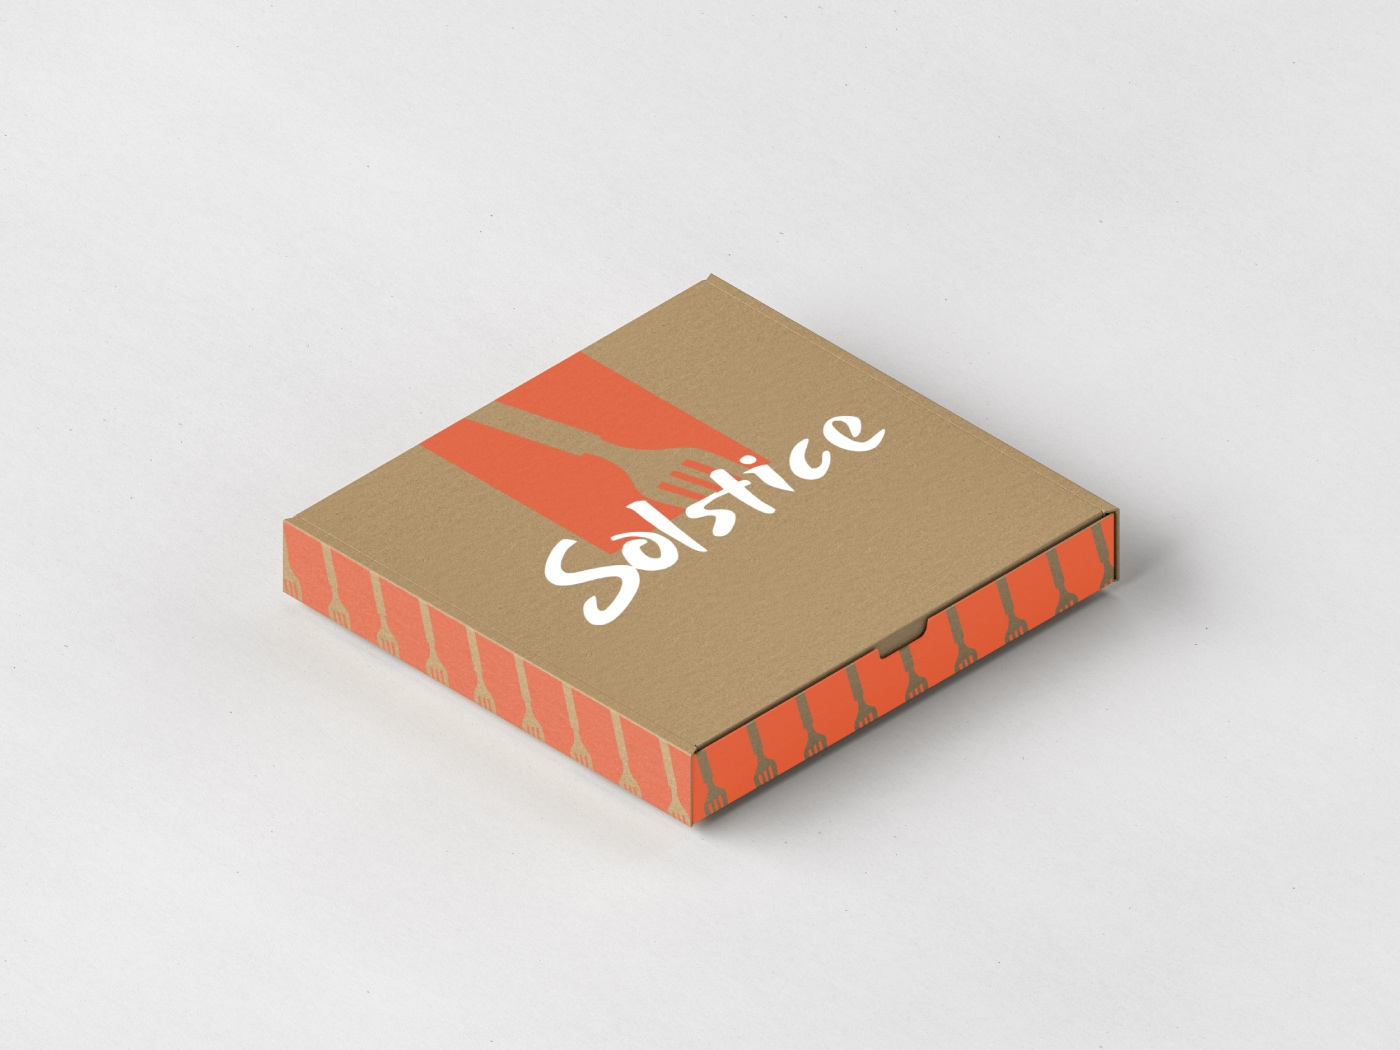 High Quality Branding and Pizza Box Design in Montreal